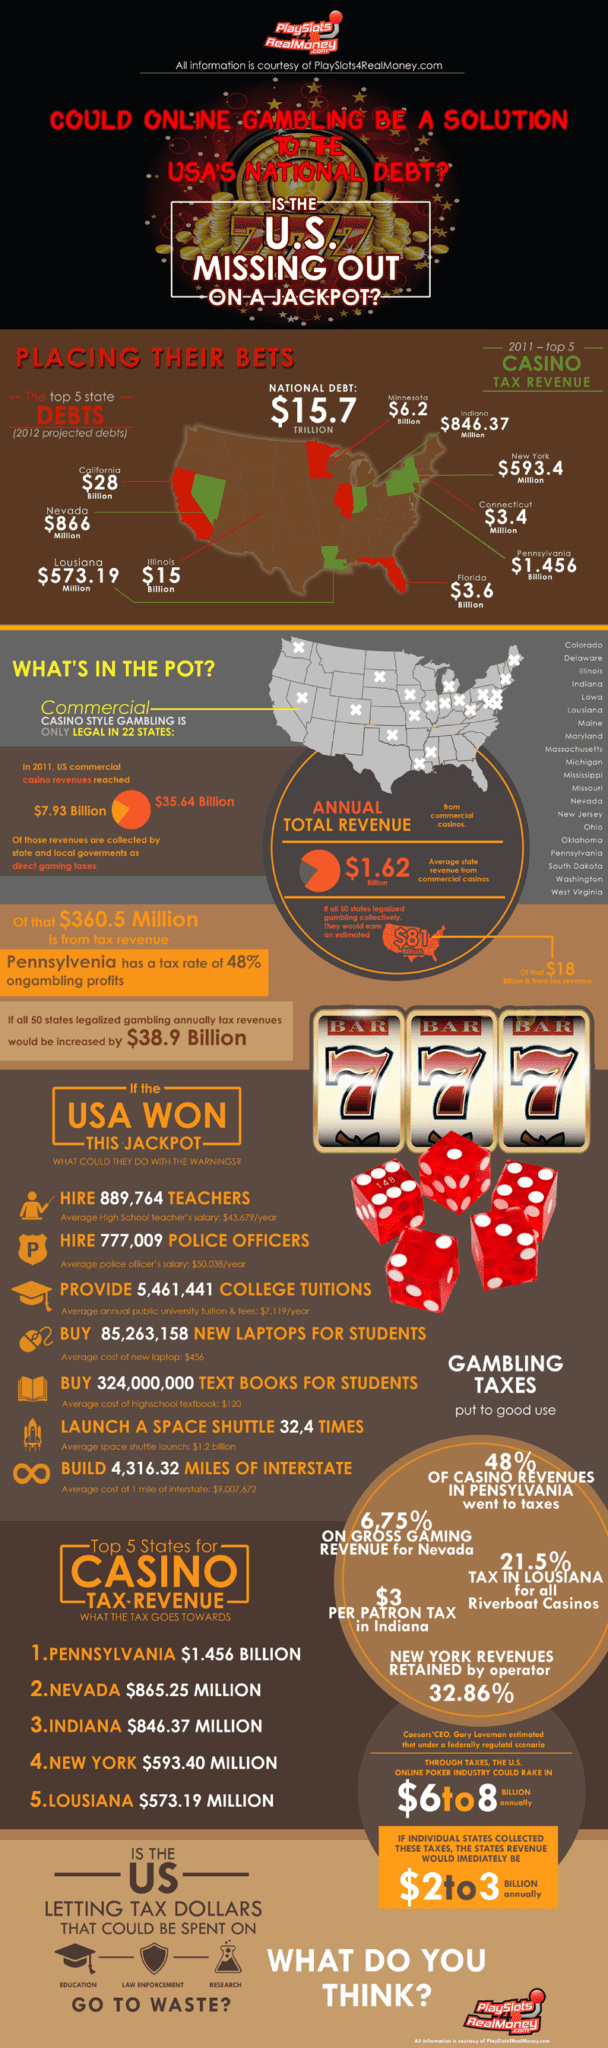 online casino real money usa